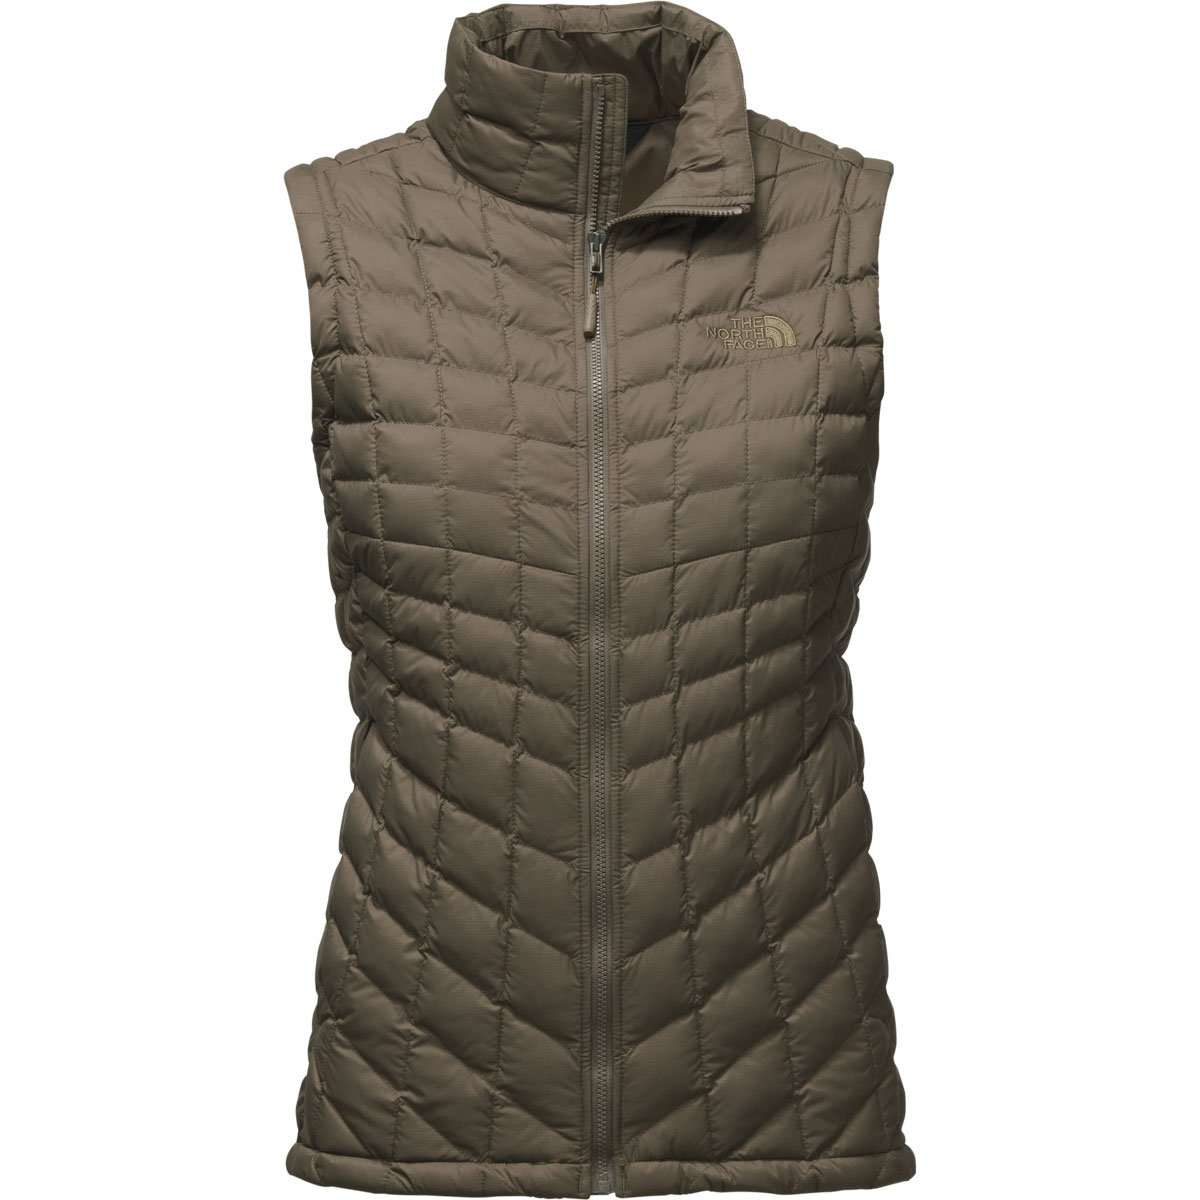 The North Face Women's Thermoball Vest - New Taupe Green Matte - M (Past Season)